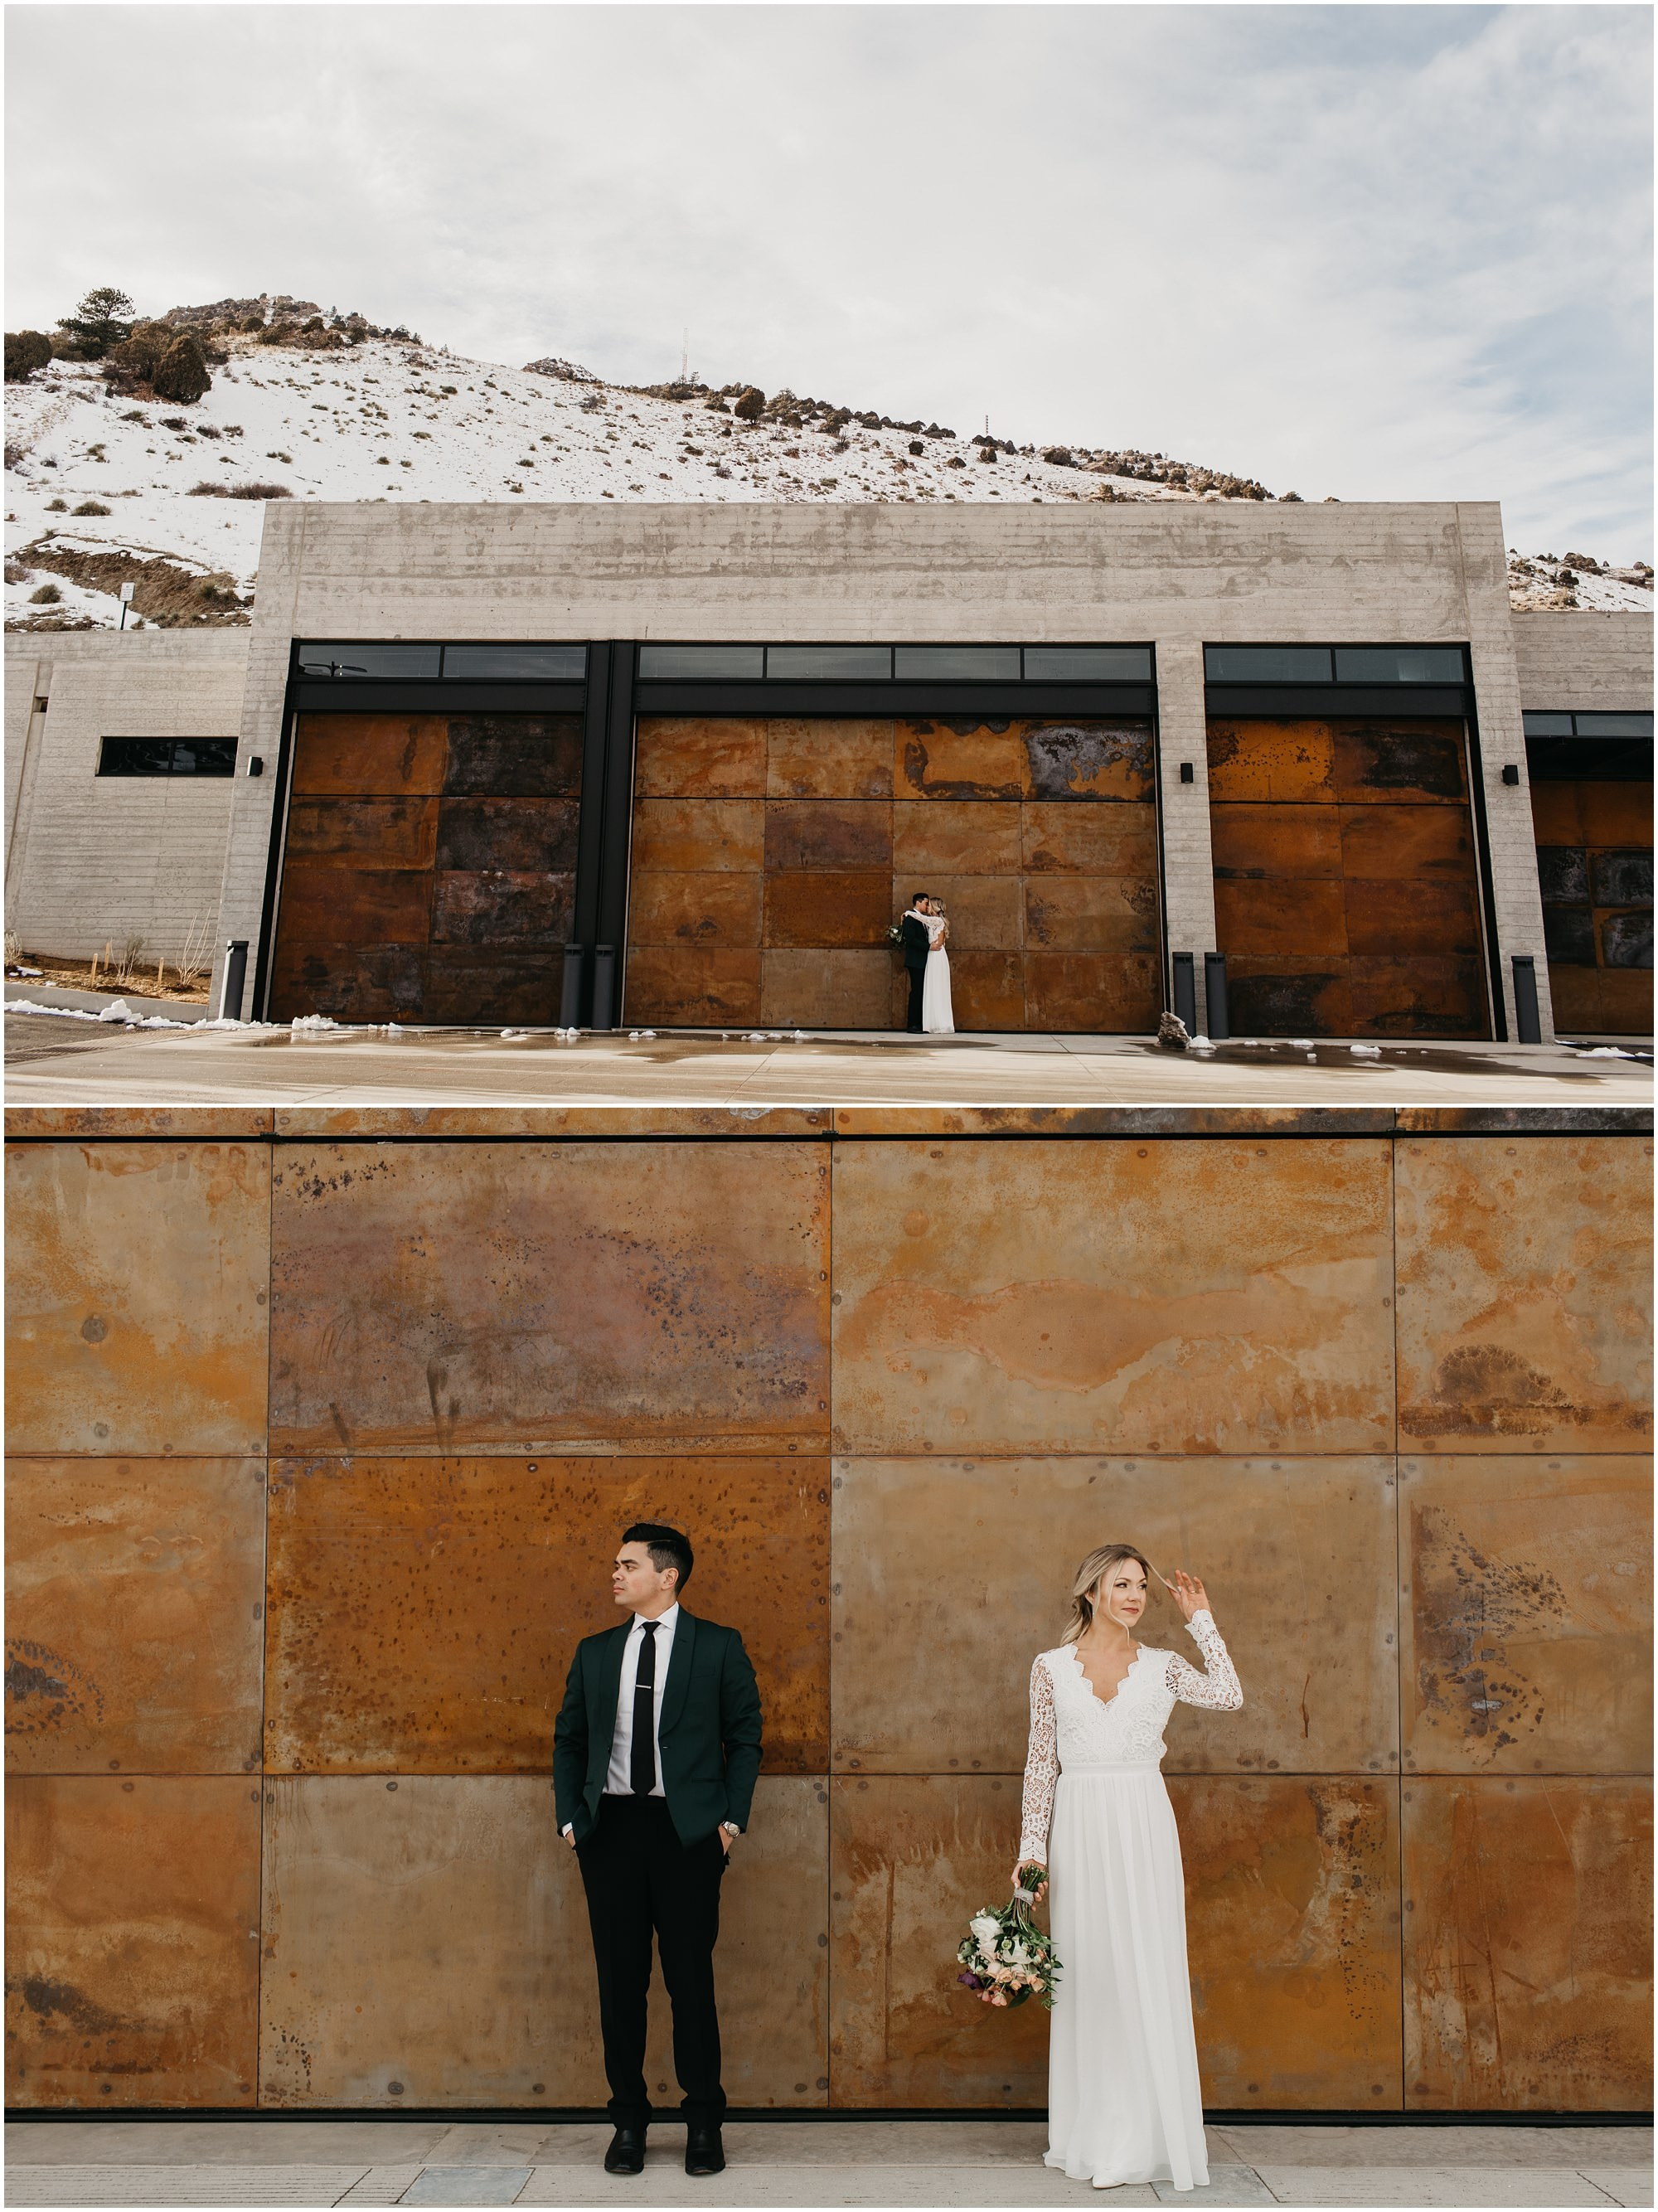 adam lowe photography, wedding, commercial, editorial, fashion, photographer, denver, colorado, outdoors, nature, couple, stylish, modern